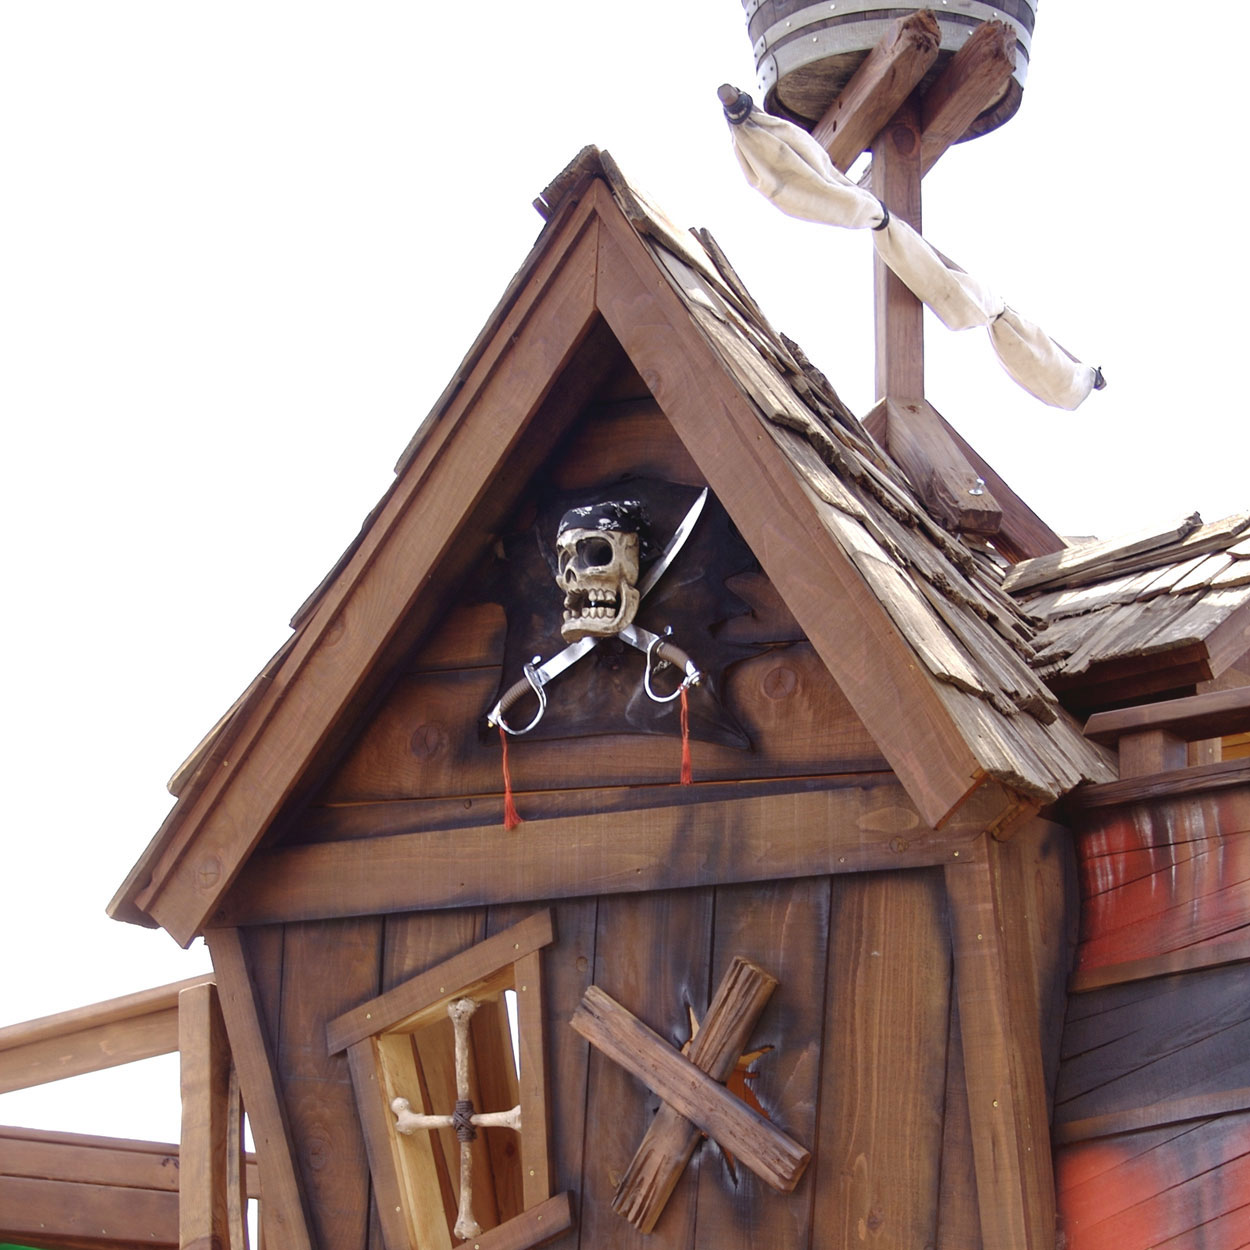 Pirate ship tree playhouse by daniels wood land extravaganzi - Wooden pirate ship playhouse ...